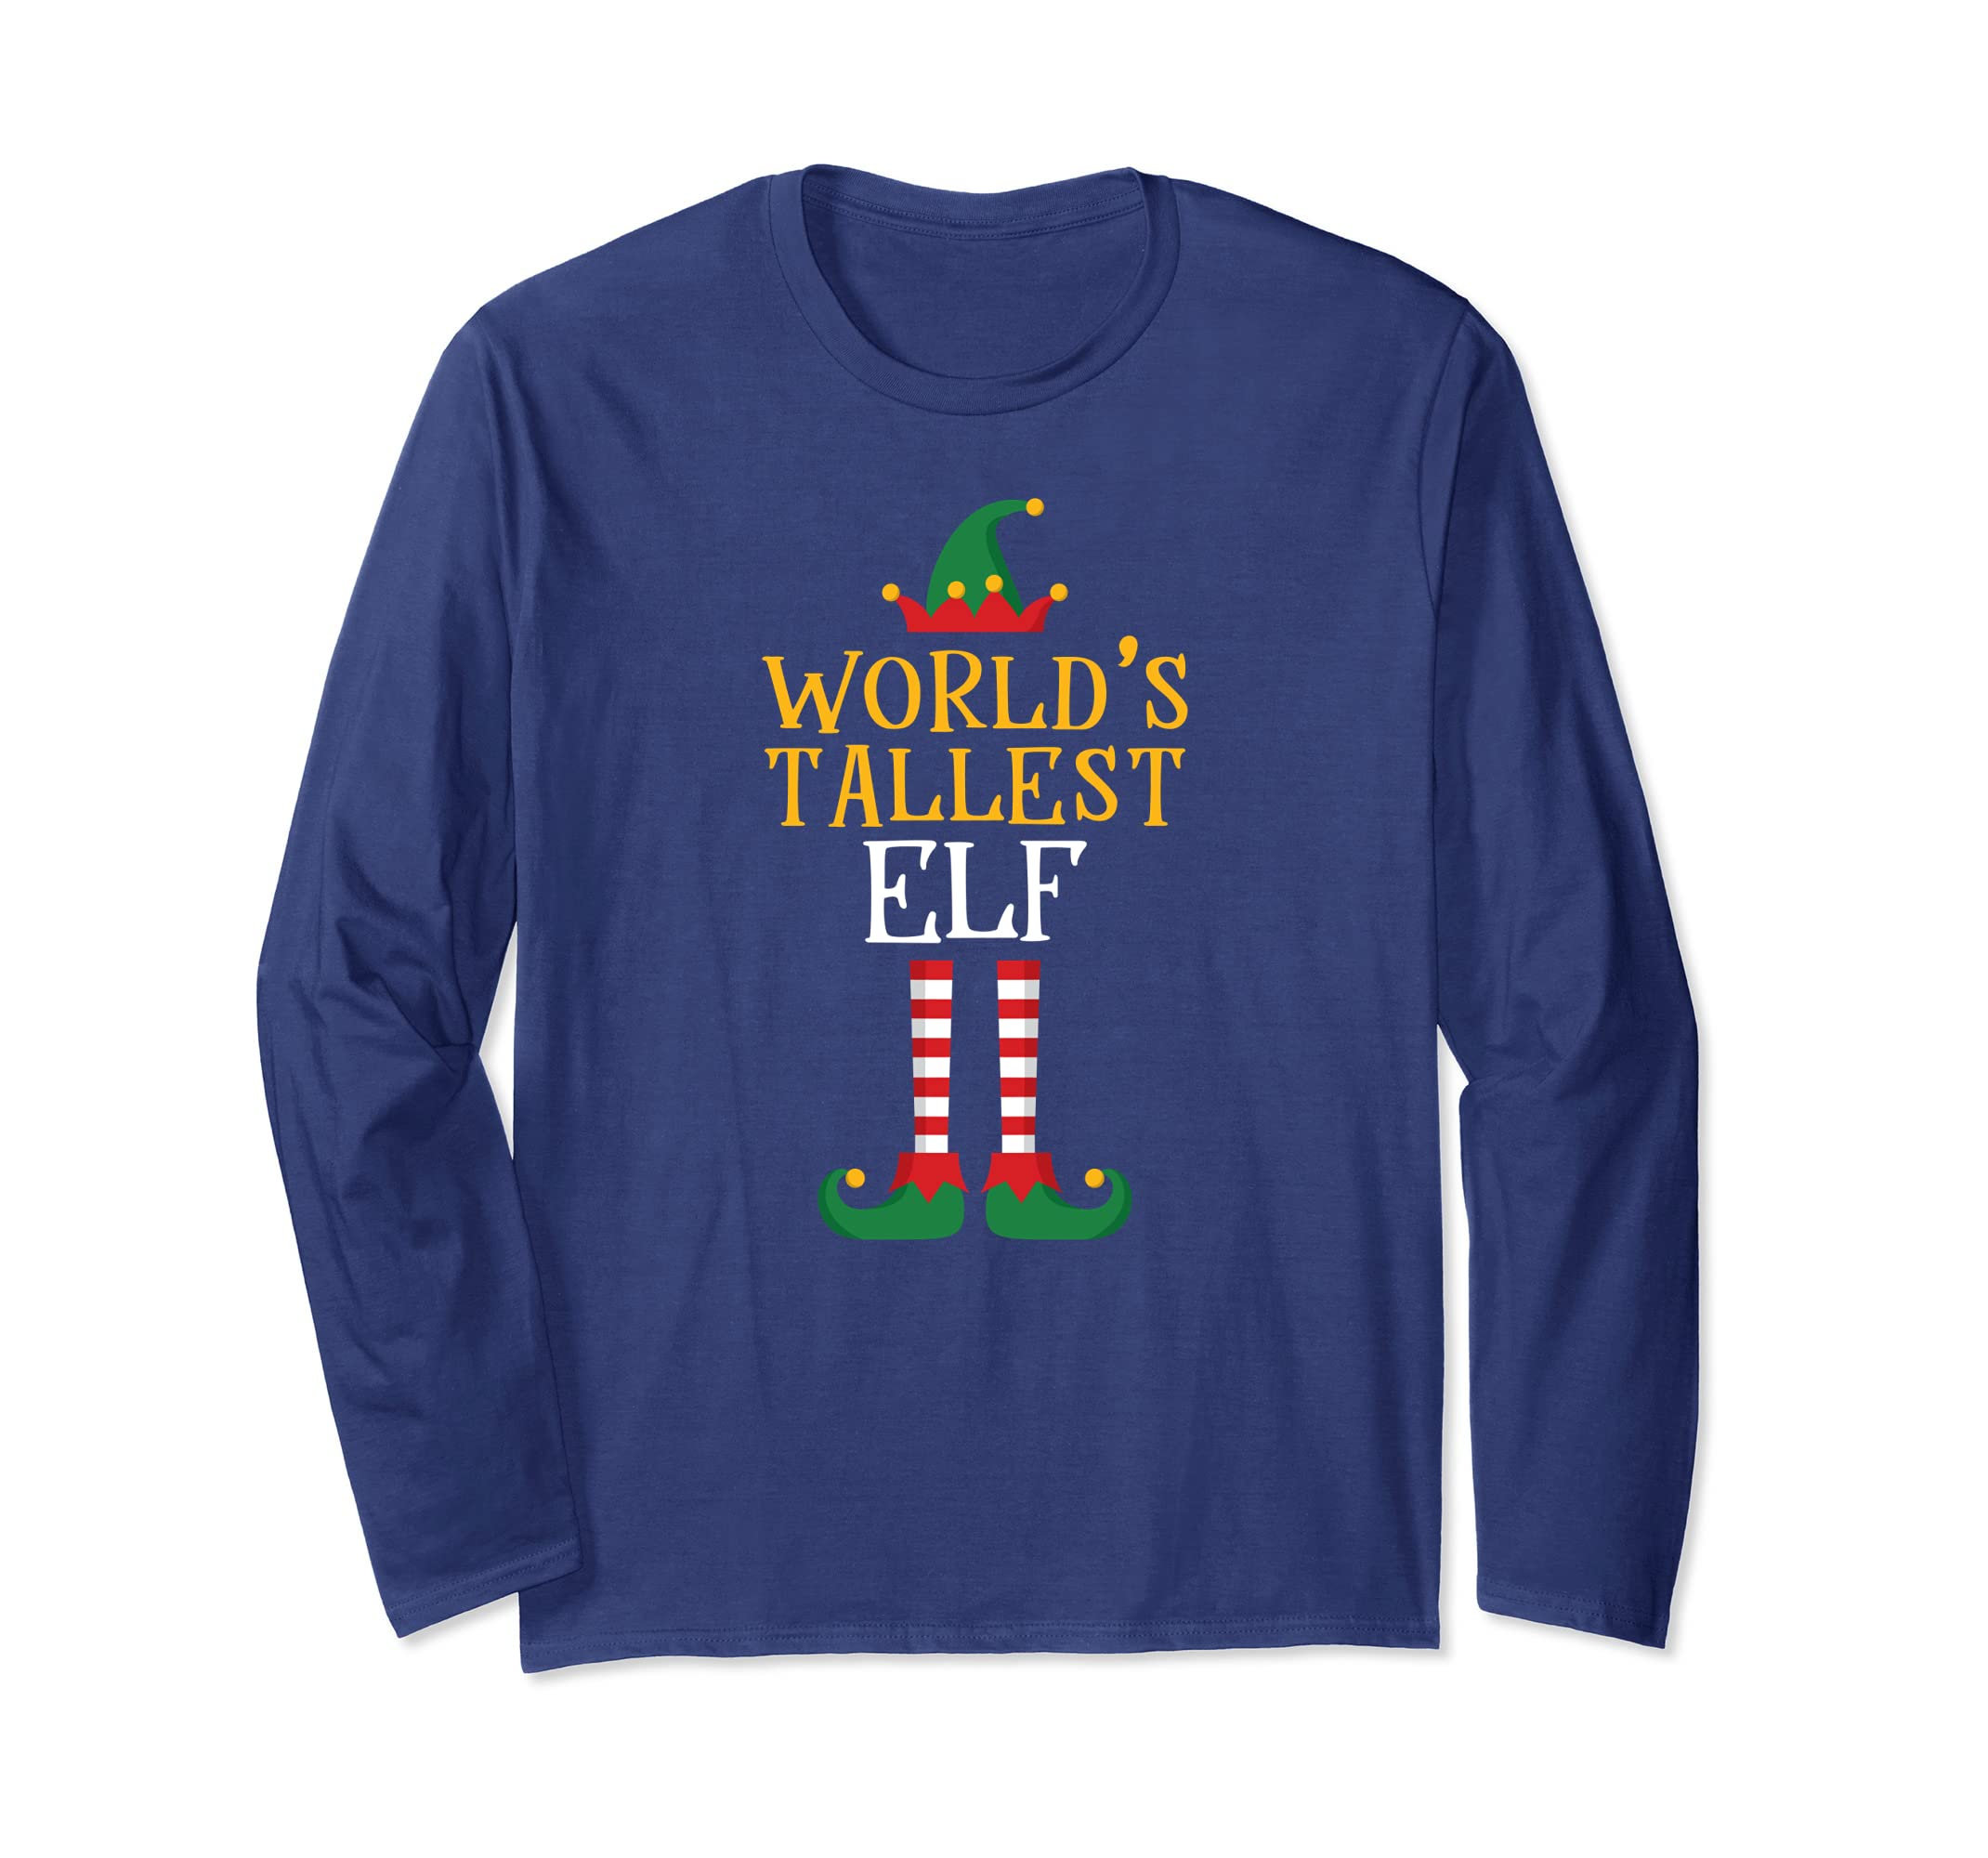 Amazoncom Worlds Tallest Elf Shirt Xmas Tall Elf Matching Family